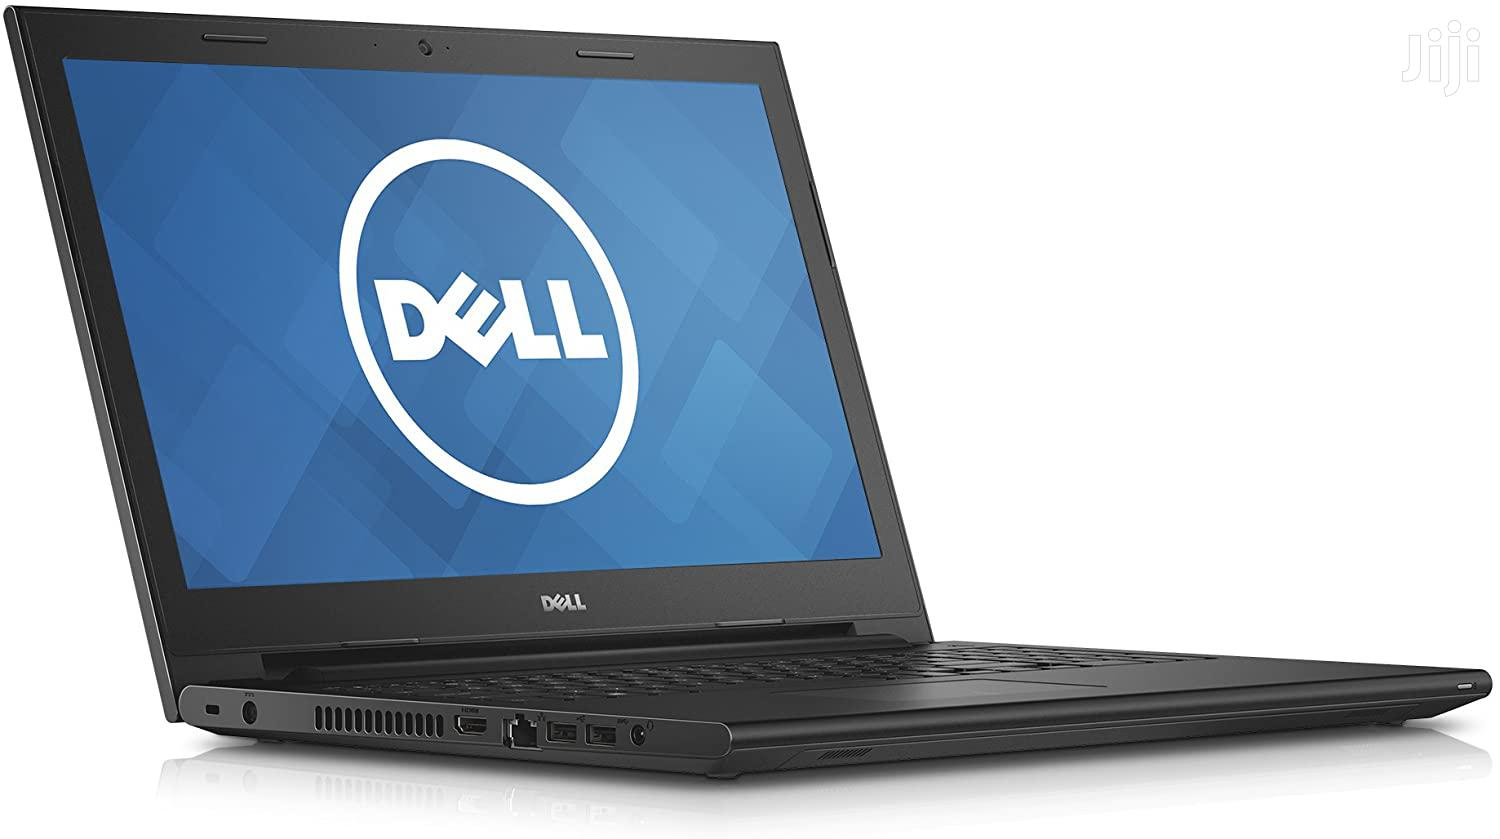 Laptop Dell Inspiron 15 3000 4GB Intel Core I5 HDD 500GB